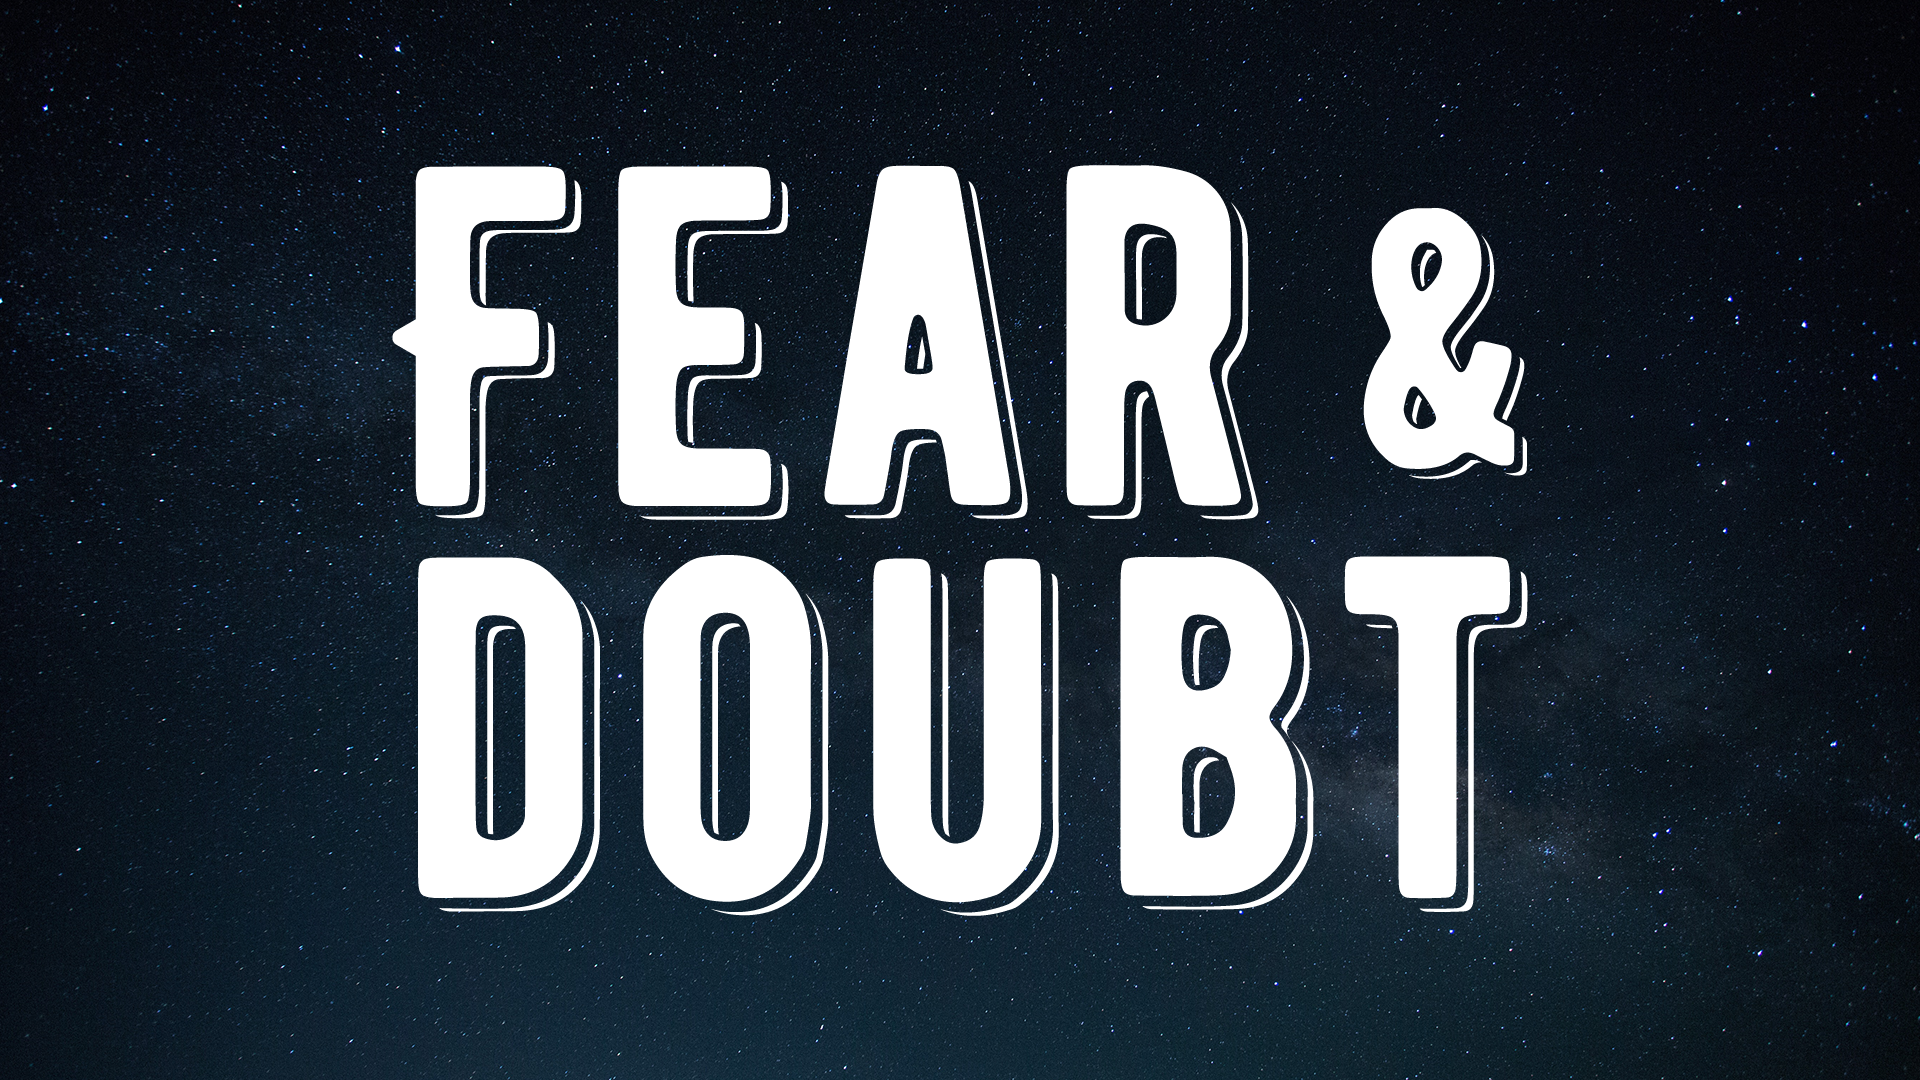 A one-off message and full night of programing on overcoming fear and doubt in our faith. (Game and small group questions are included.)